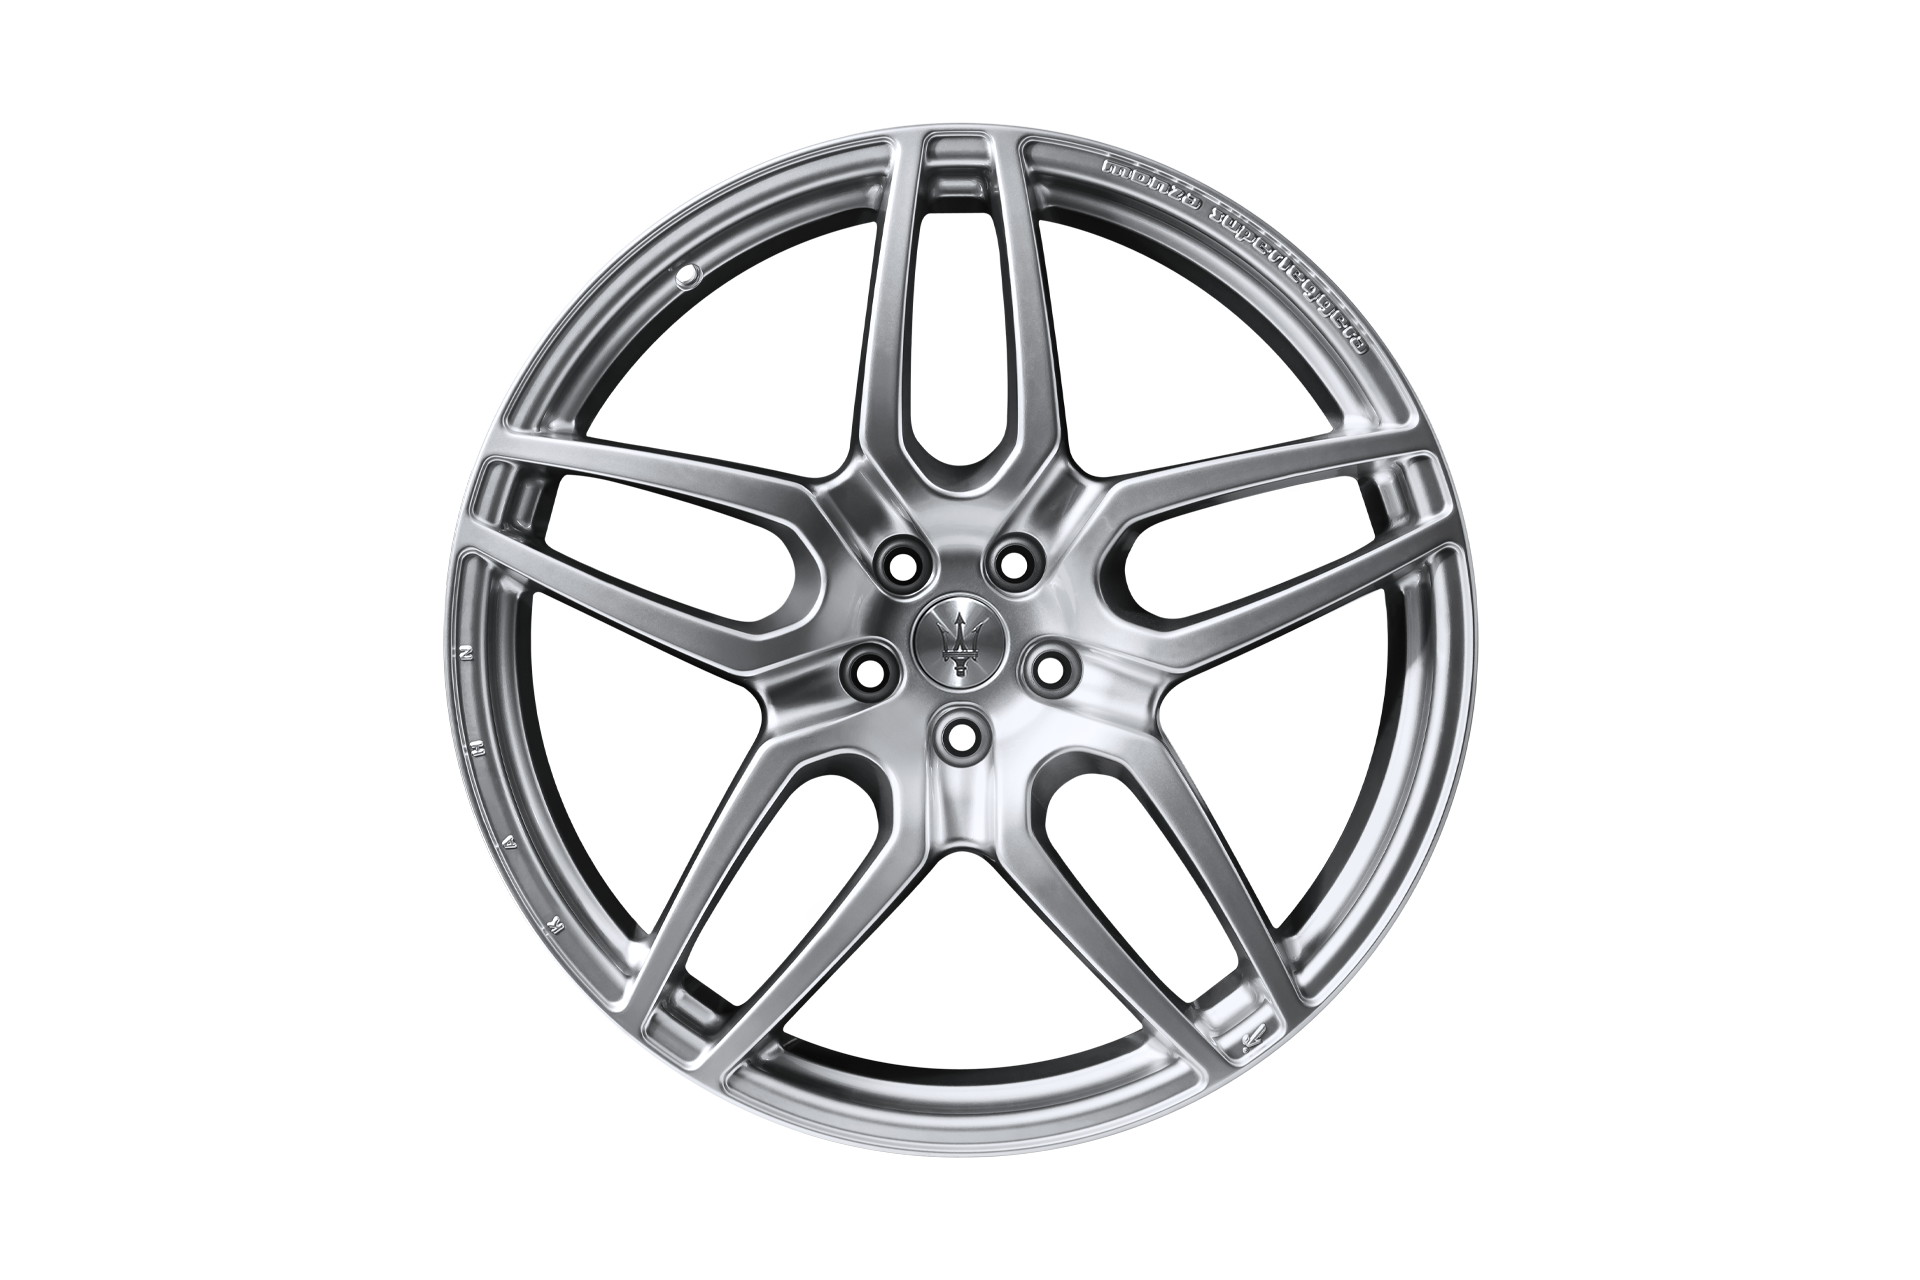 Maserati Gran Tourismo (2007-2019) Monza Super Leggera Light Alloy Wheels by Kahn - Image 3926